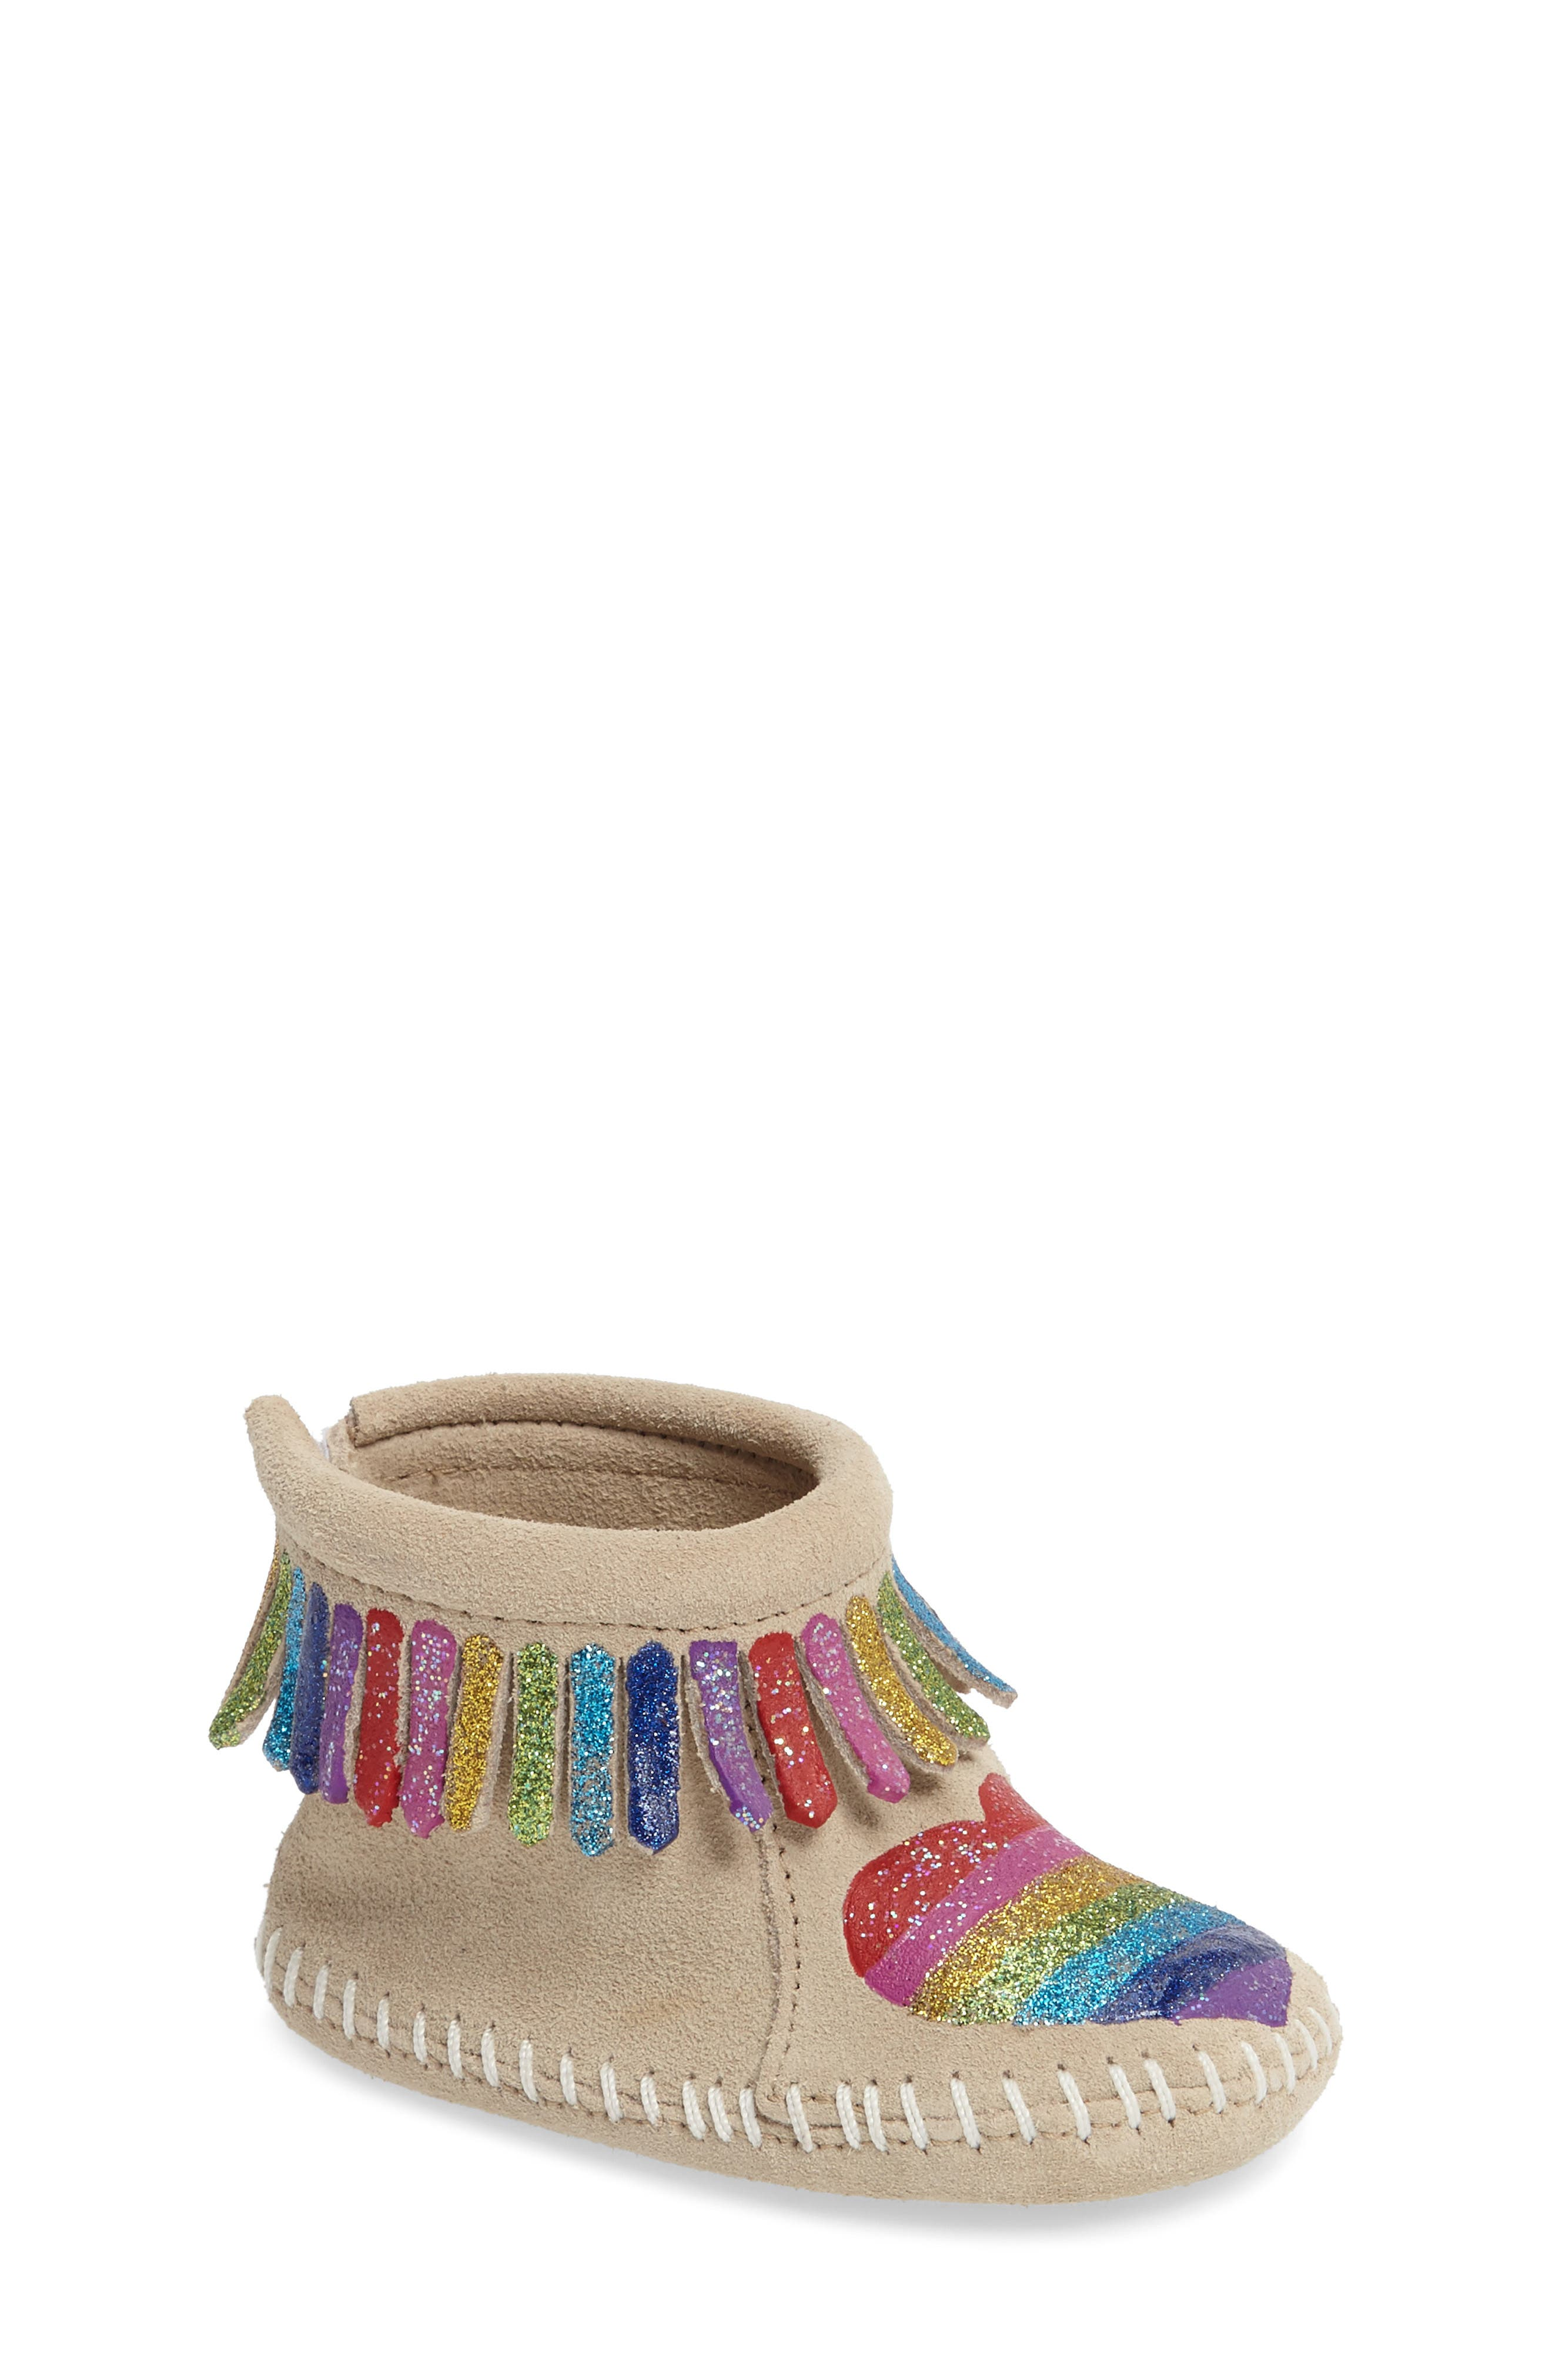 MINNETONKA, x Free Range Mama Love One Another Bootie, Main thumbnail 1, color, STONE